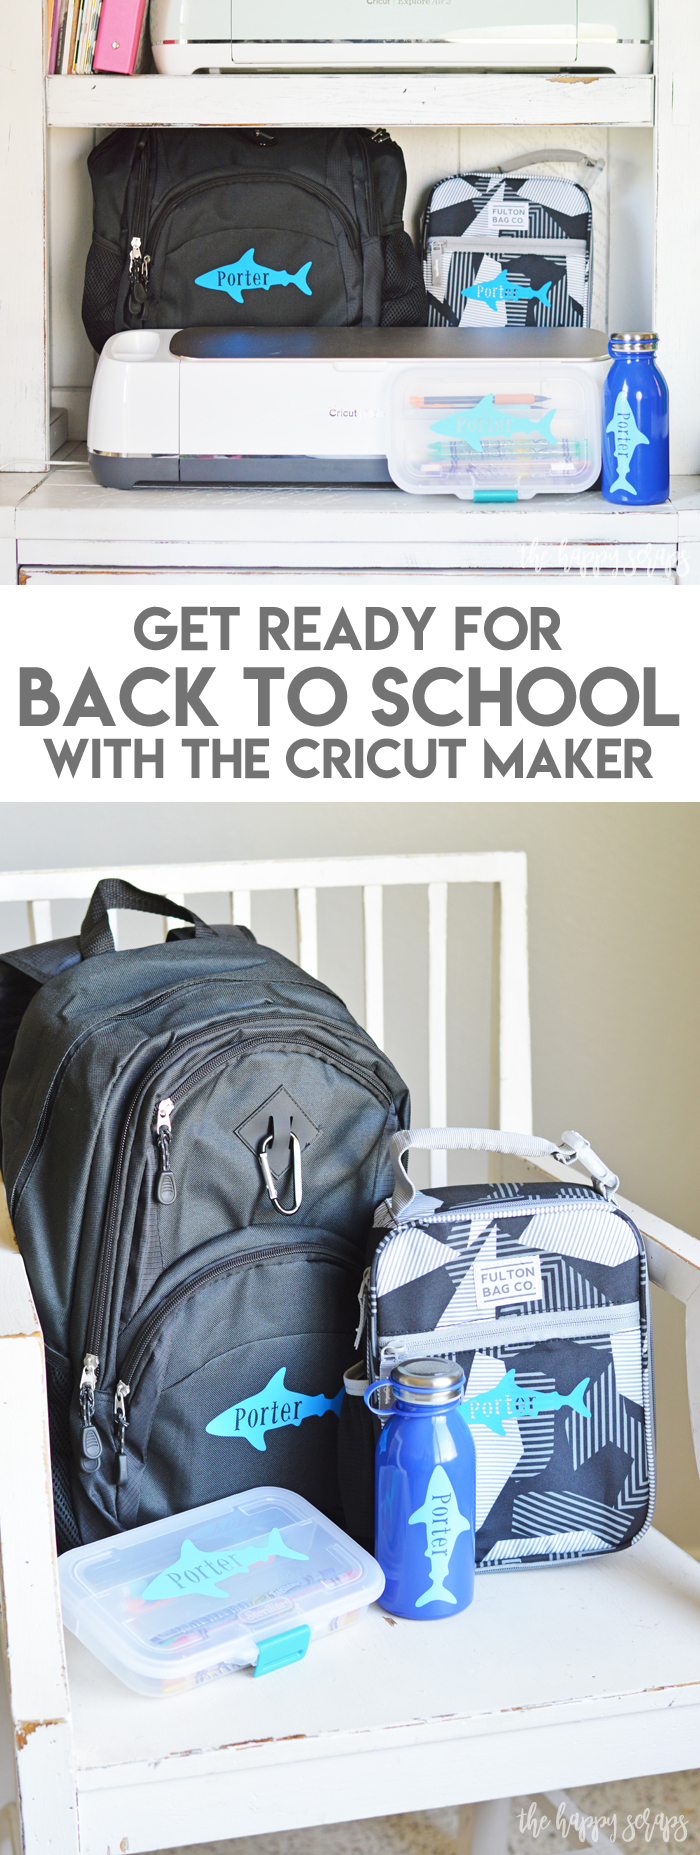 Getting ready for Back to School with the Cricut Maker. The Cricut Maker sure makes getting ready for school to start again, a breeze.